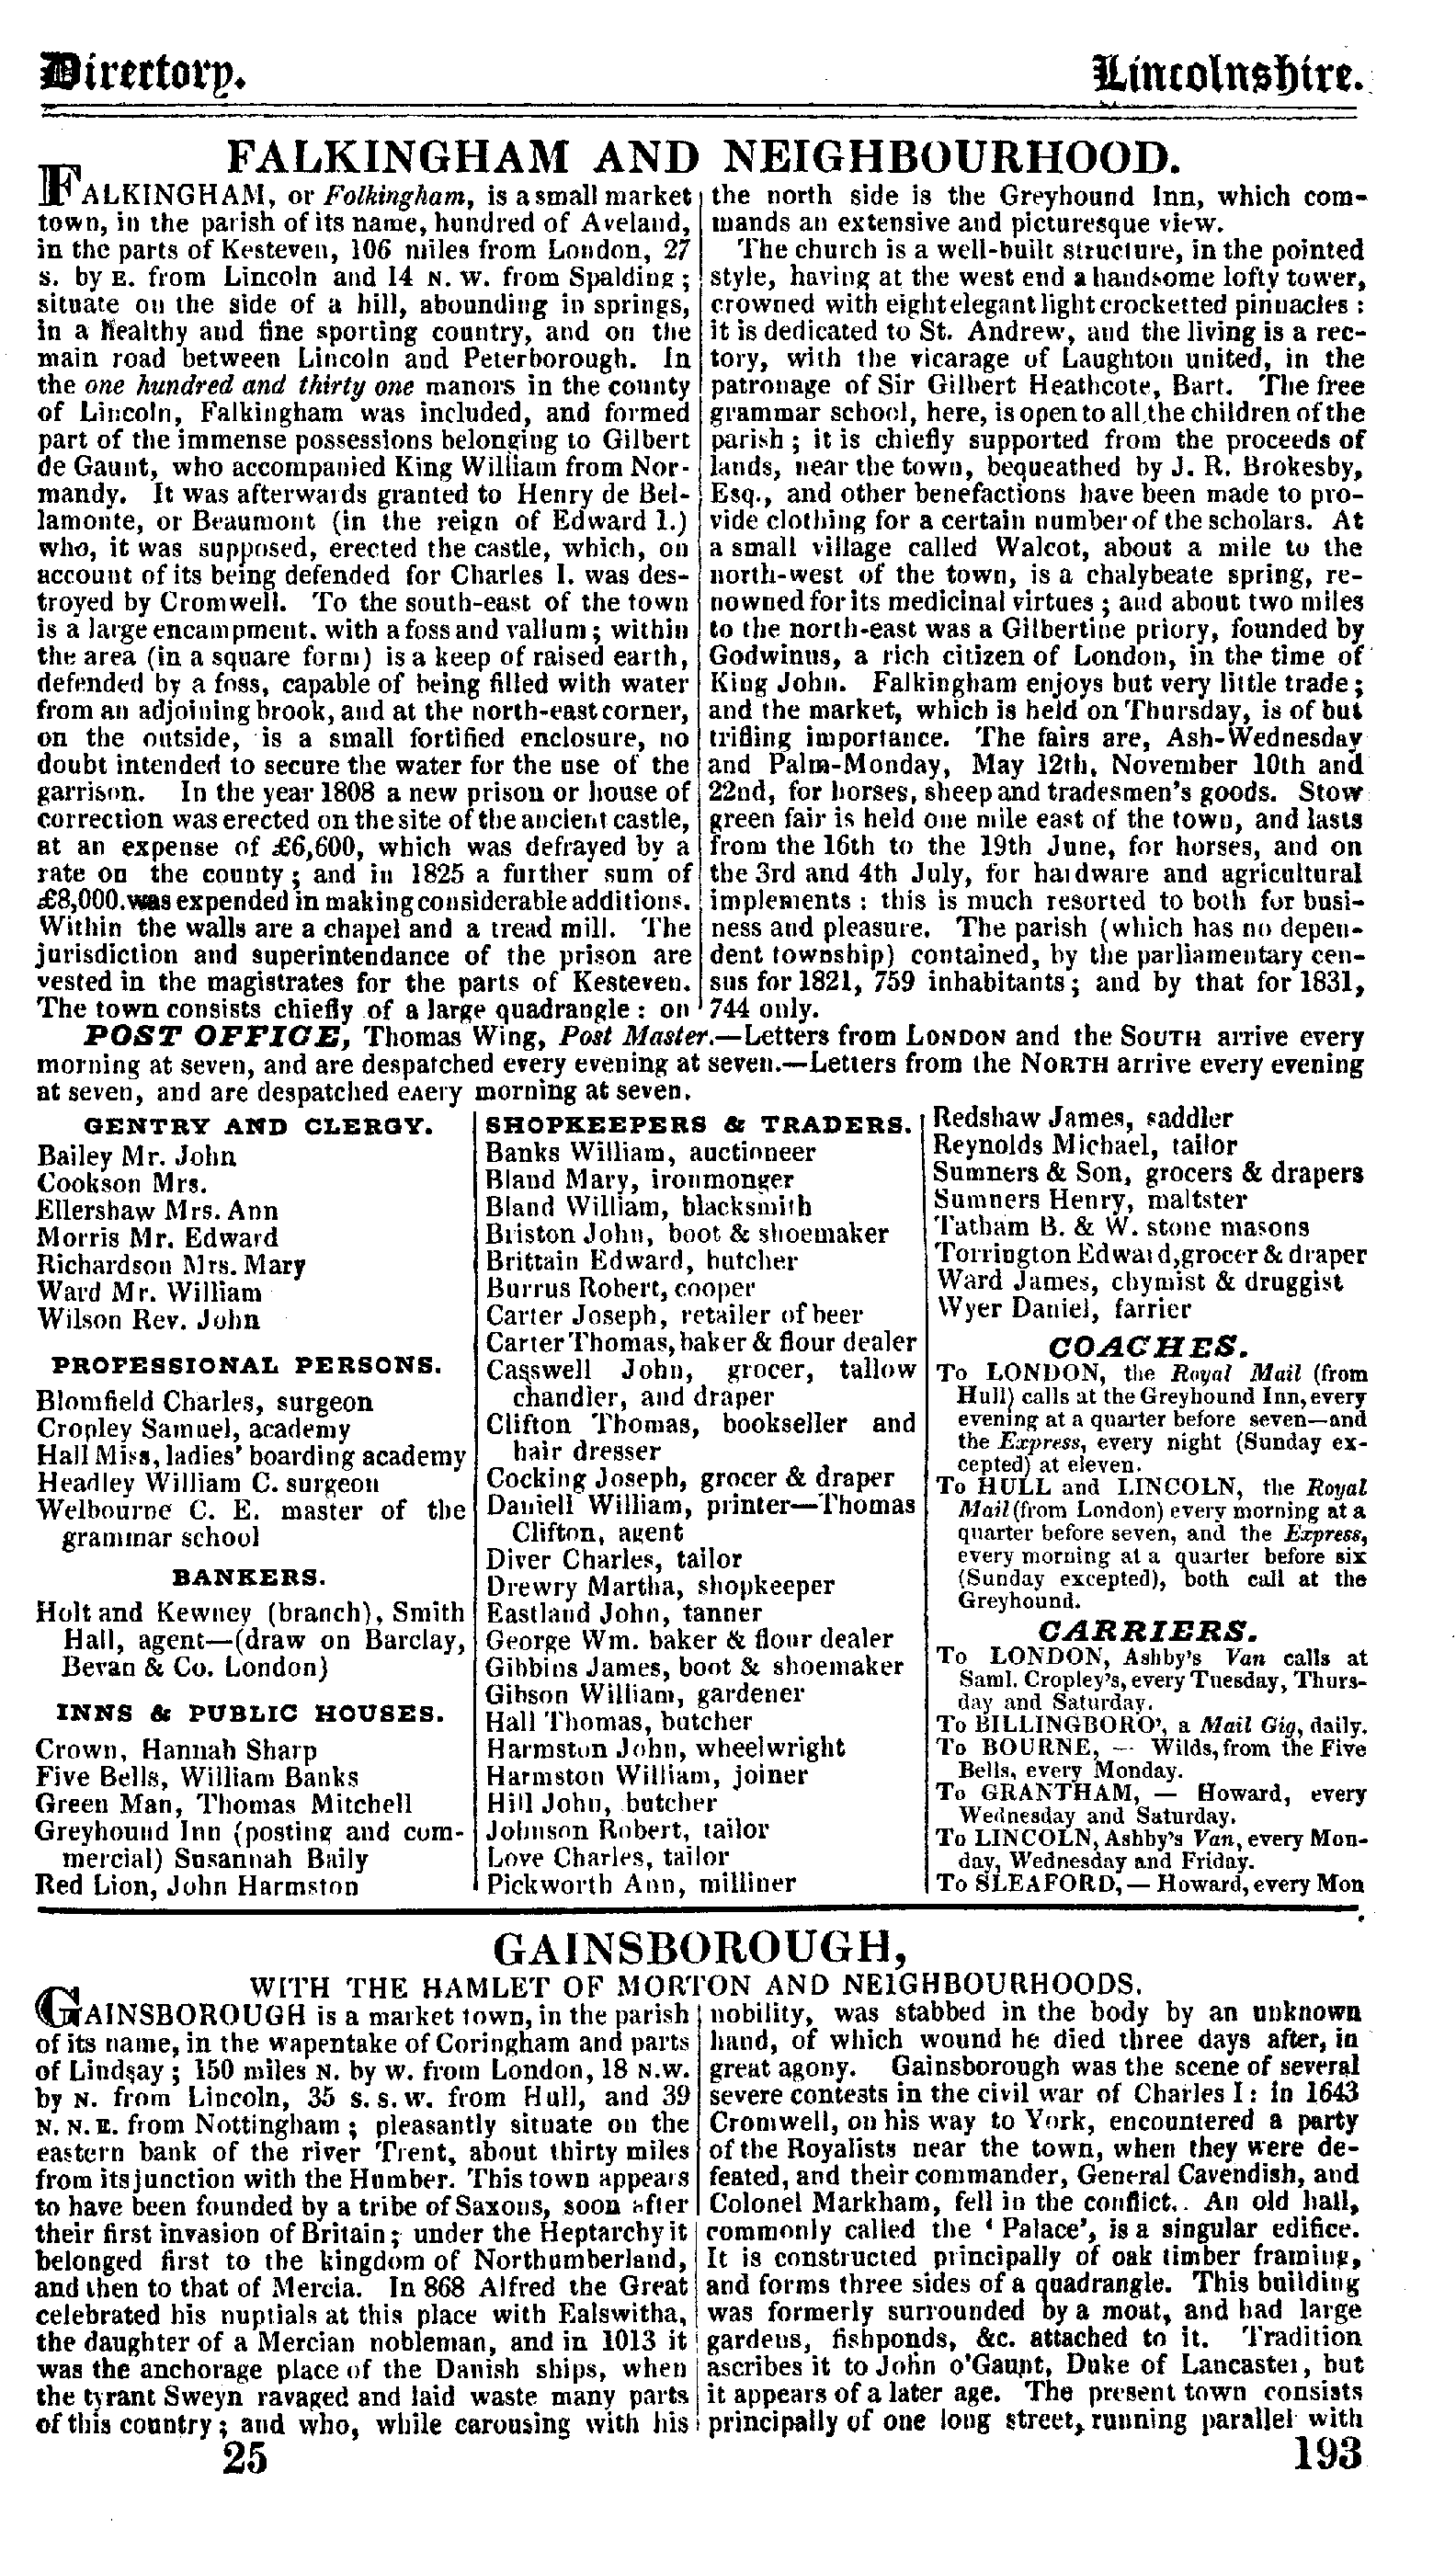 Pigot Directory of Lincolnshire, 1835 page 193 - click to open larger version in a new window